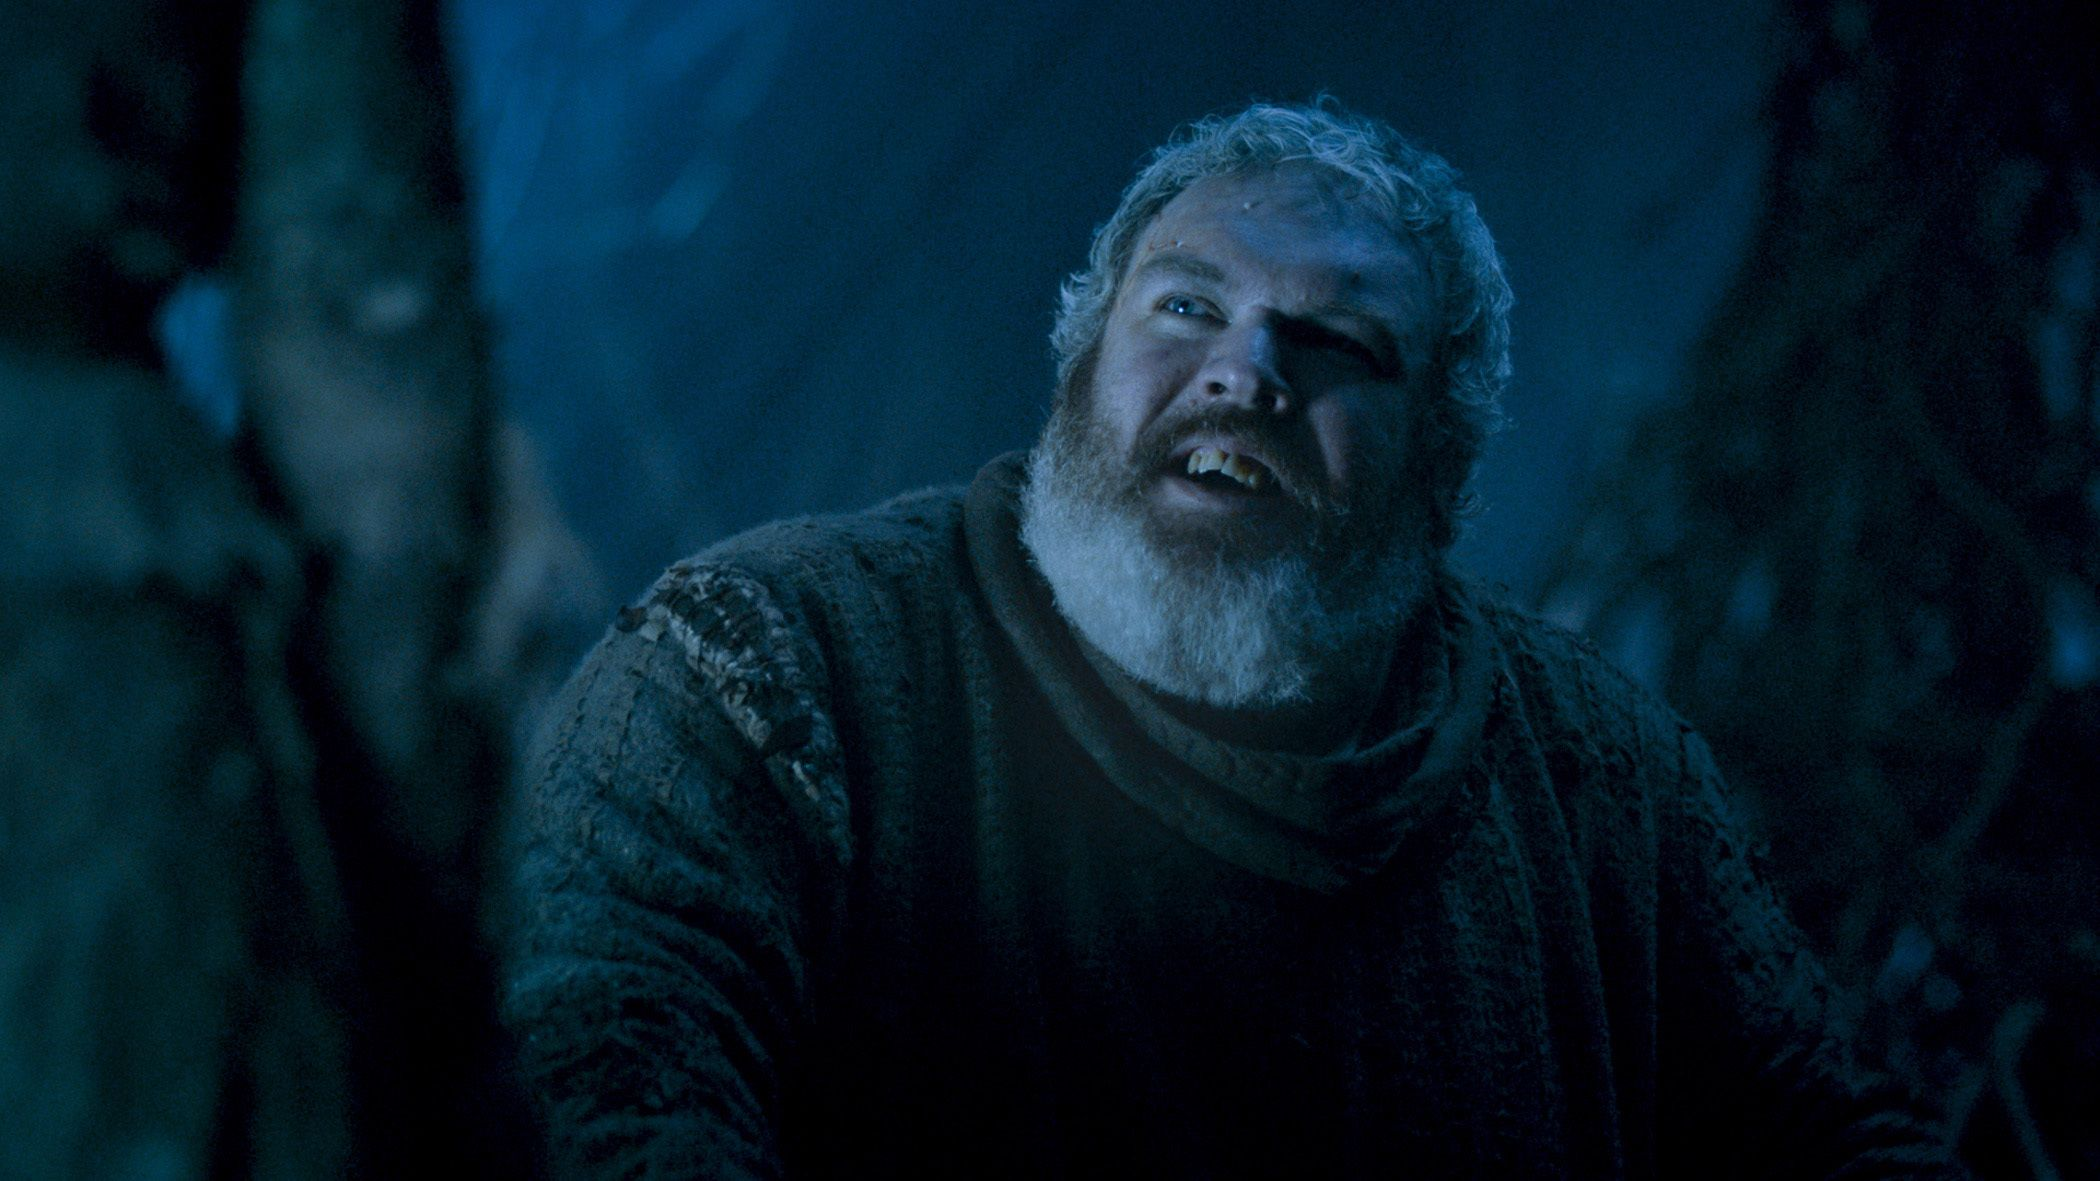 'Game of Thrones' recap: What does 'Hodor' mean? Now we ...